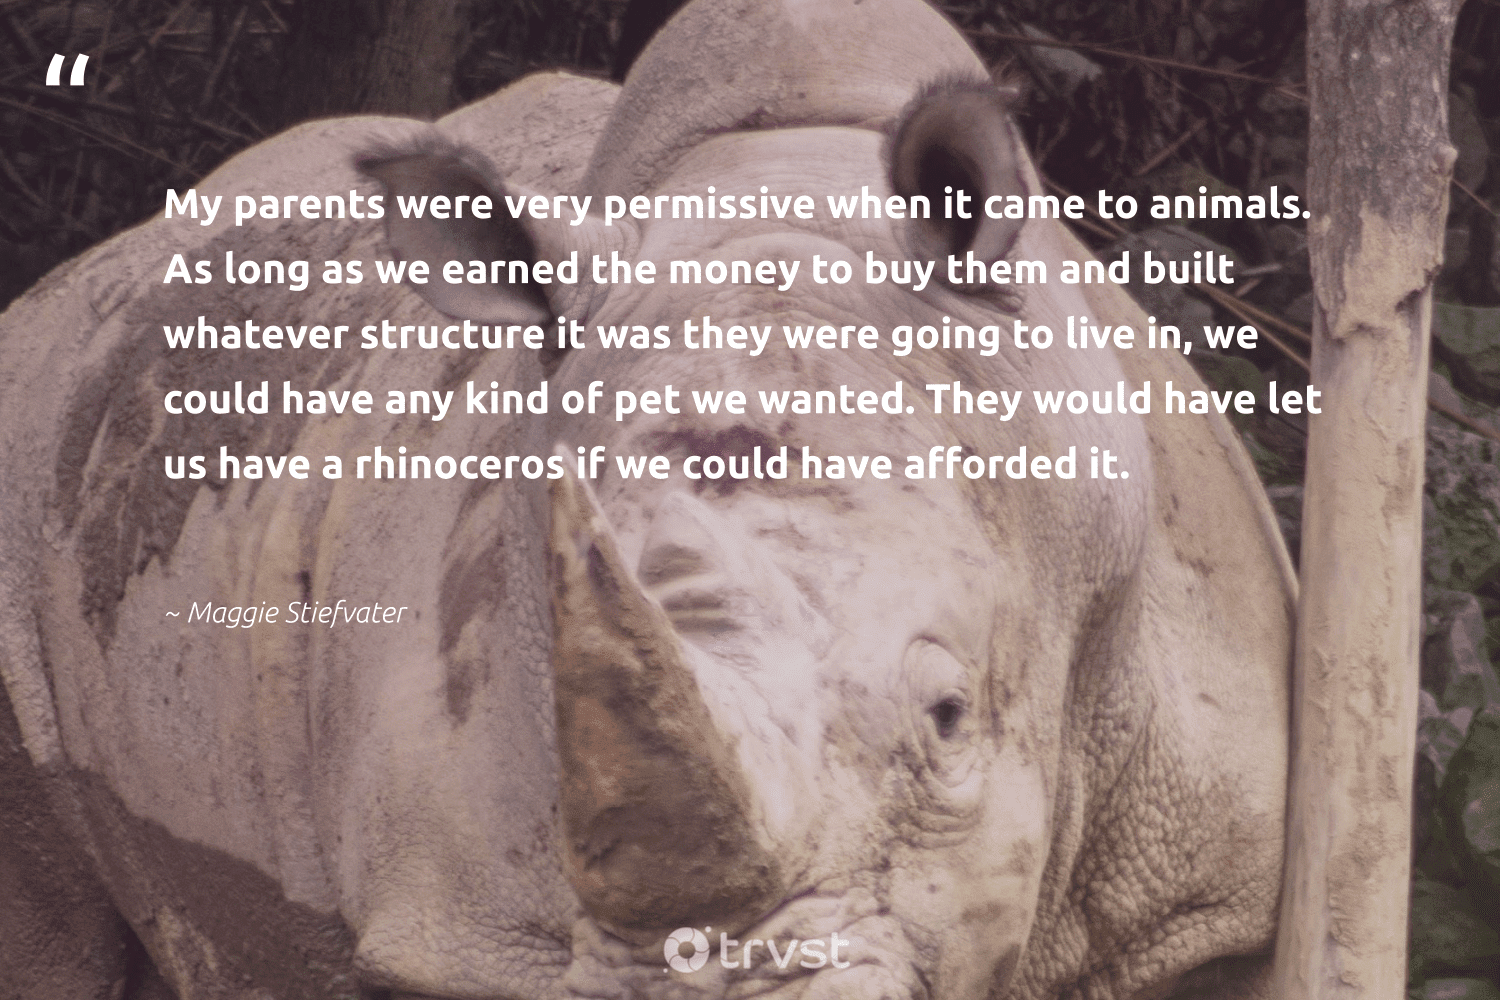 """""""My parents were very permissive when it came to animals. As long as we earned the money to buy them and built whatever structure it was they were going to live in, we could have any kind of pet we wanted. They would have let us have a rhinoceros if we could have afforded it.""""  - Maggie Stiefvater #trvst #quotes #animals #rhinoceros #animal #bigfive #geology #collectiveaction #wildlife #sustainability #natural #thinkgreen"""